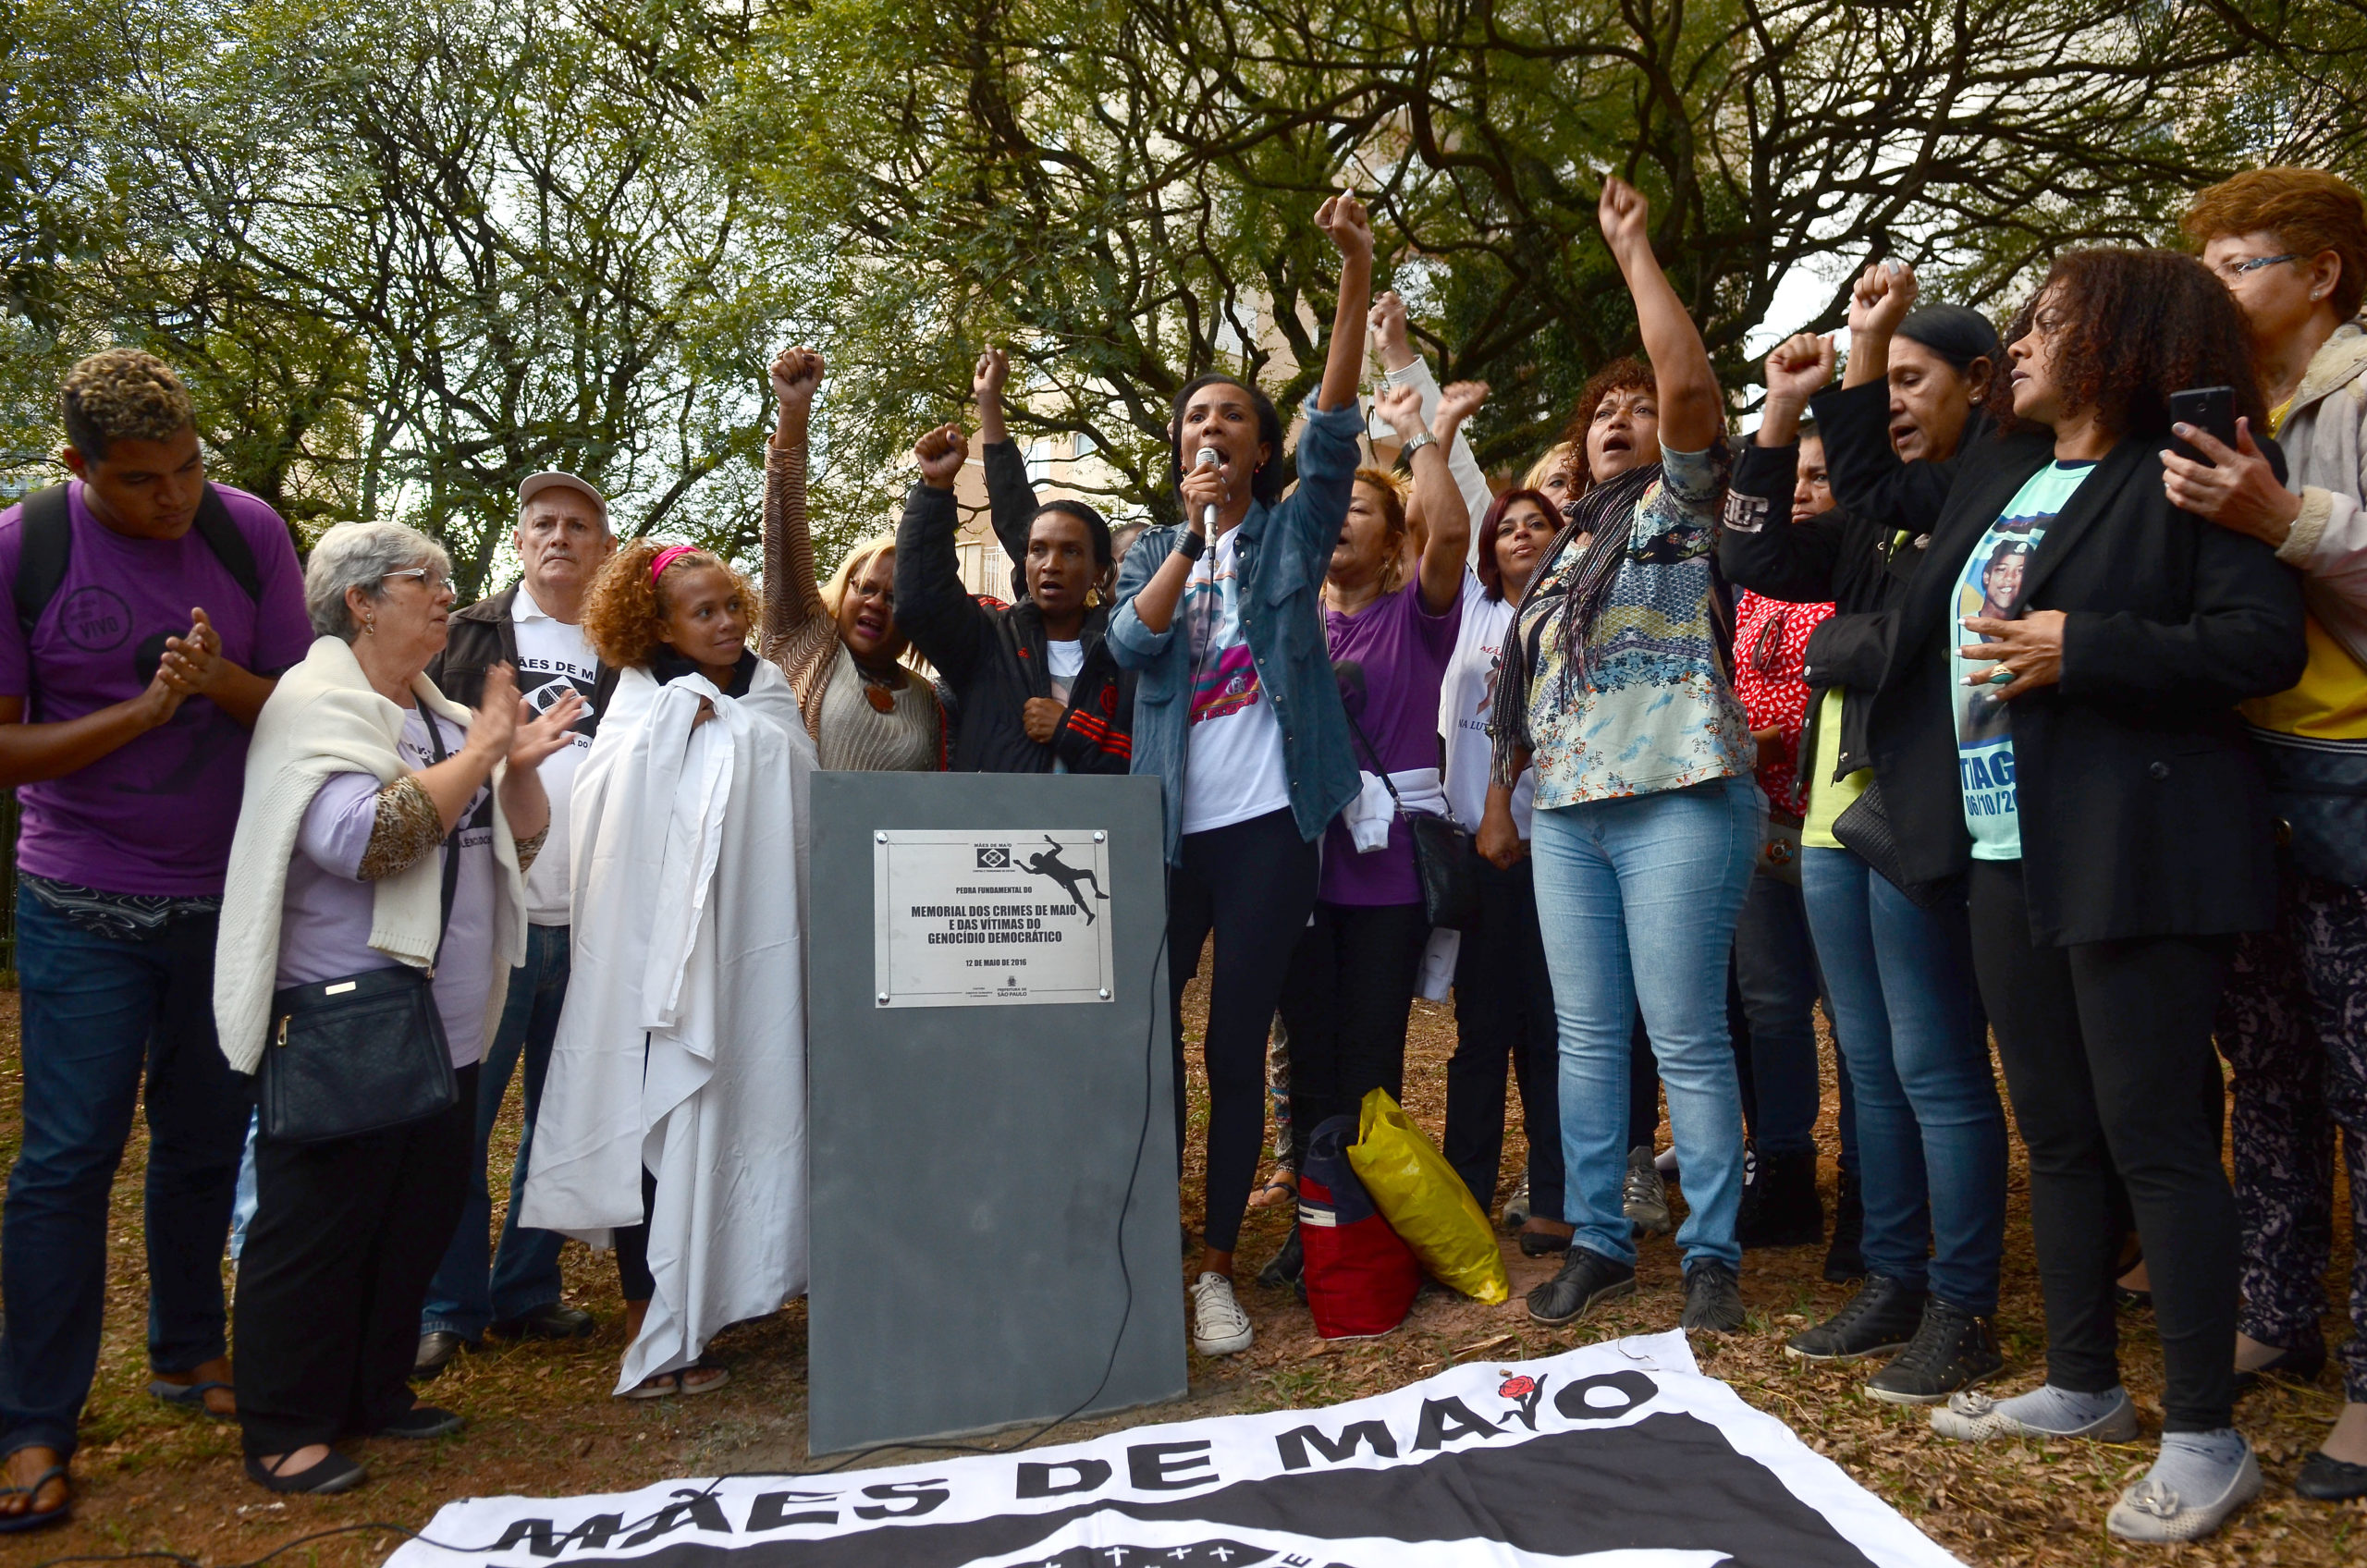 In 2016, Mothers unveil memorial to honour the Crimes of May deaths. Photo Rovena Rosa/Agência Brasil